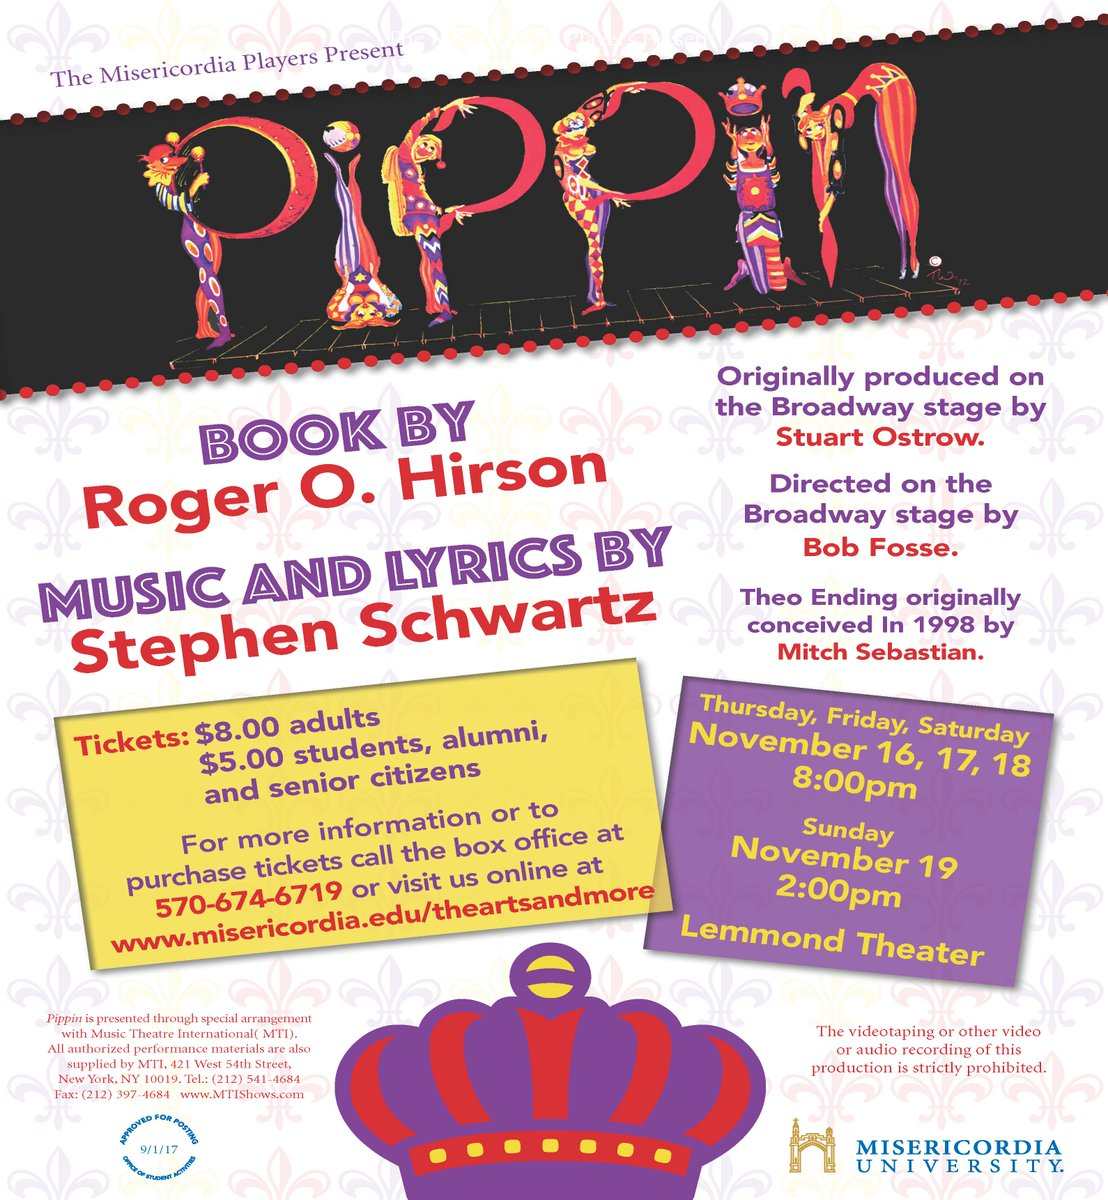 Misericordia u on twitter misericordiau presenting the musical misericordia u on twitter misericordiau presenting the musical pippin on nov 16 19 httpstgrf1opjx93 and nepascene httpstz8lgz3t9gx stopboris Images